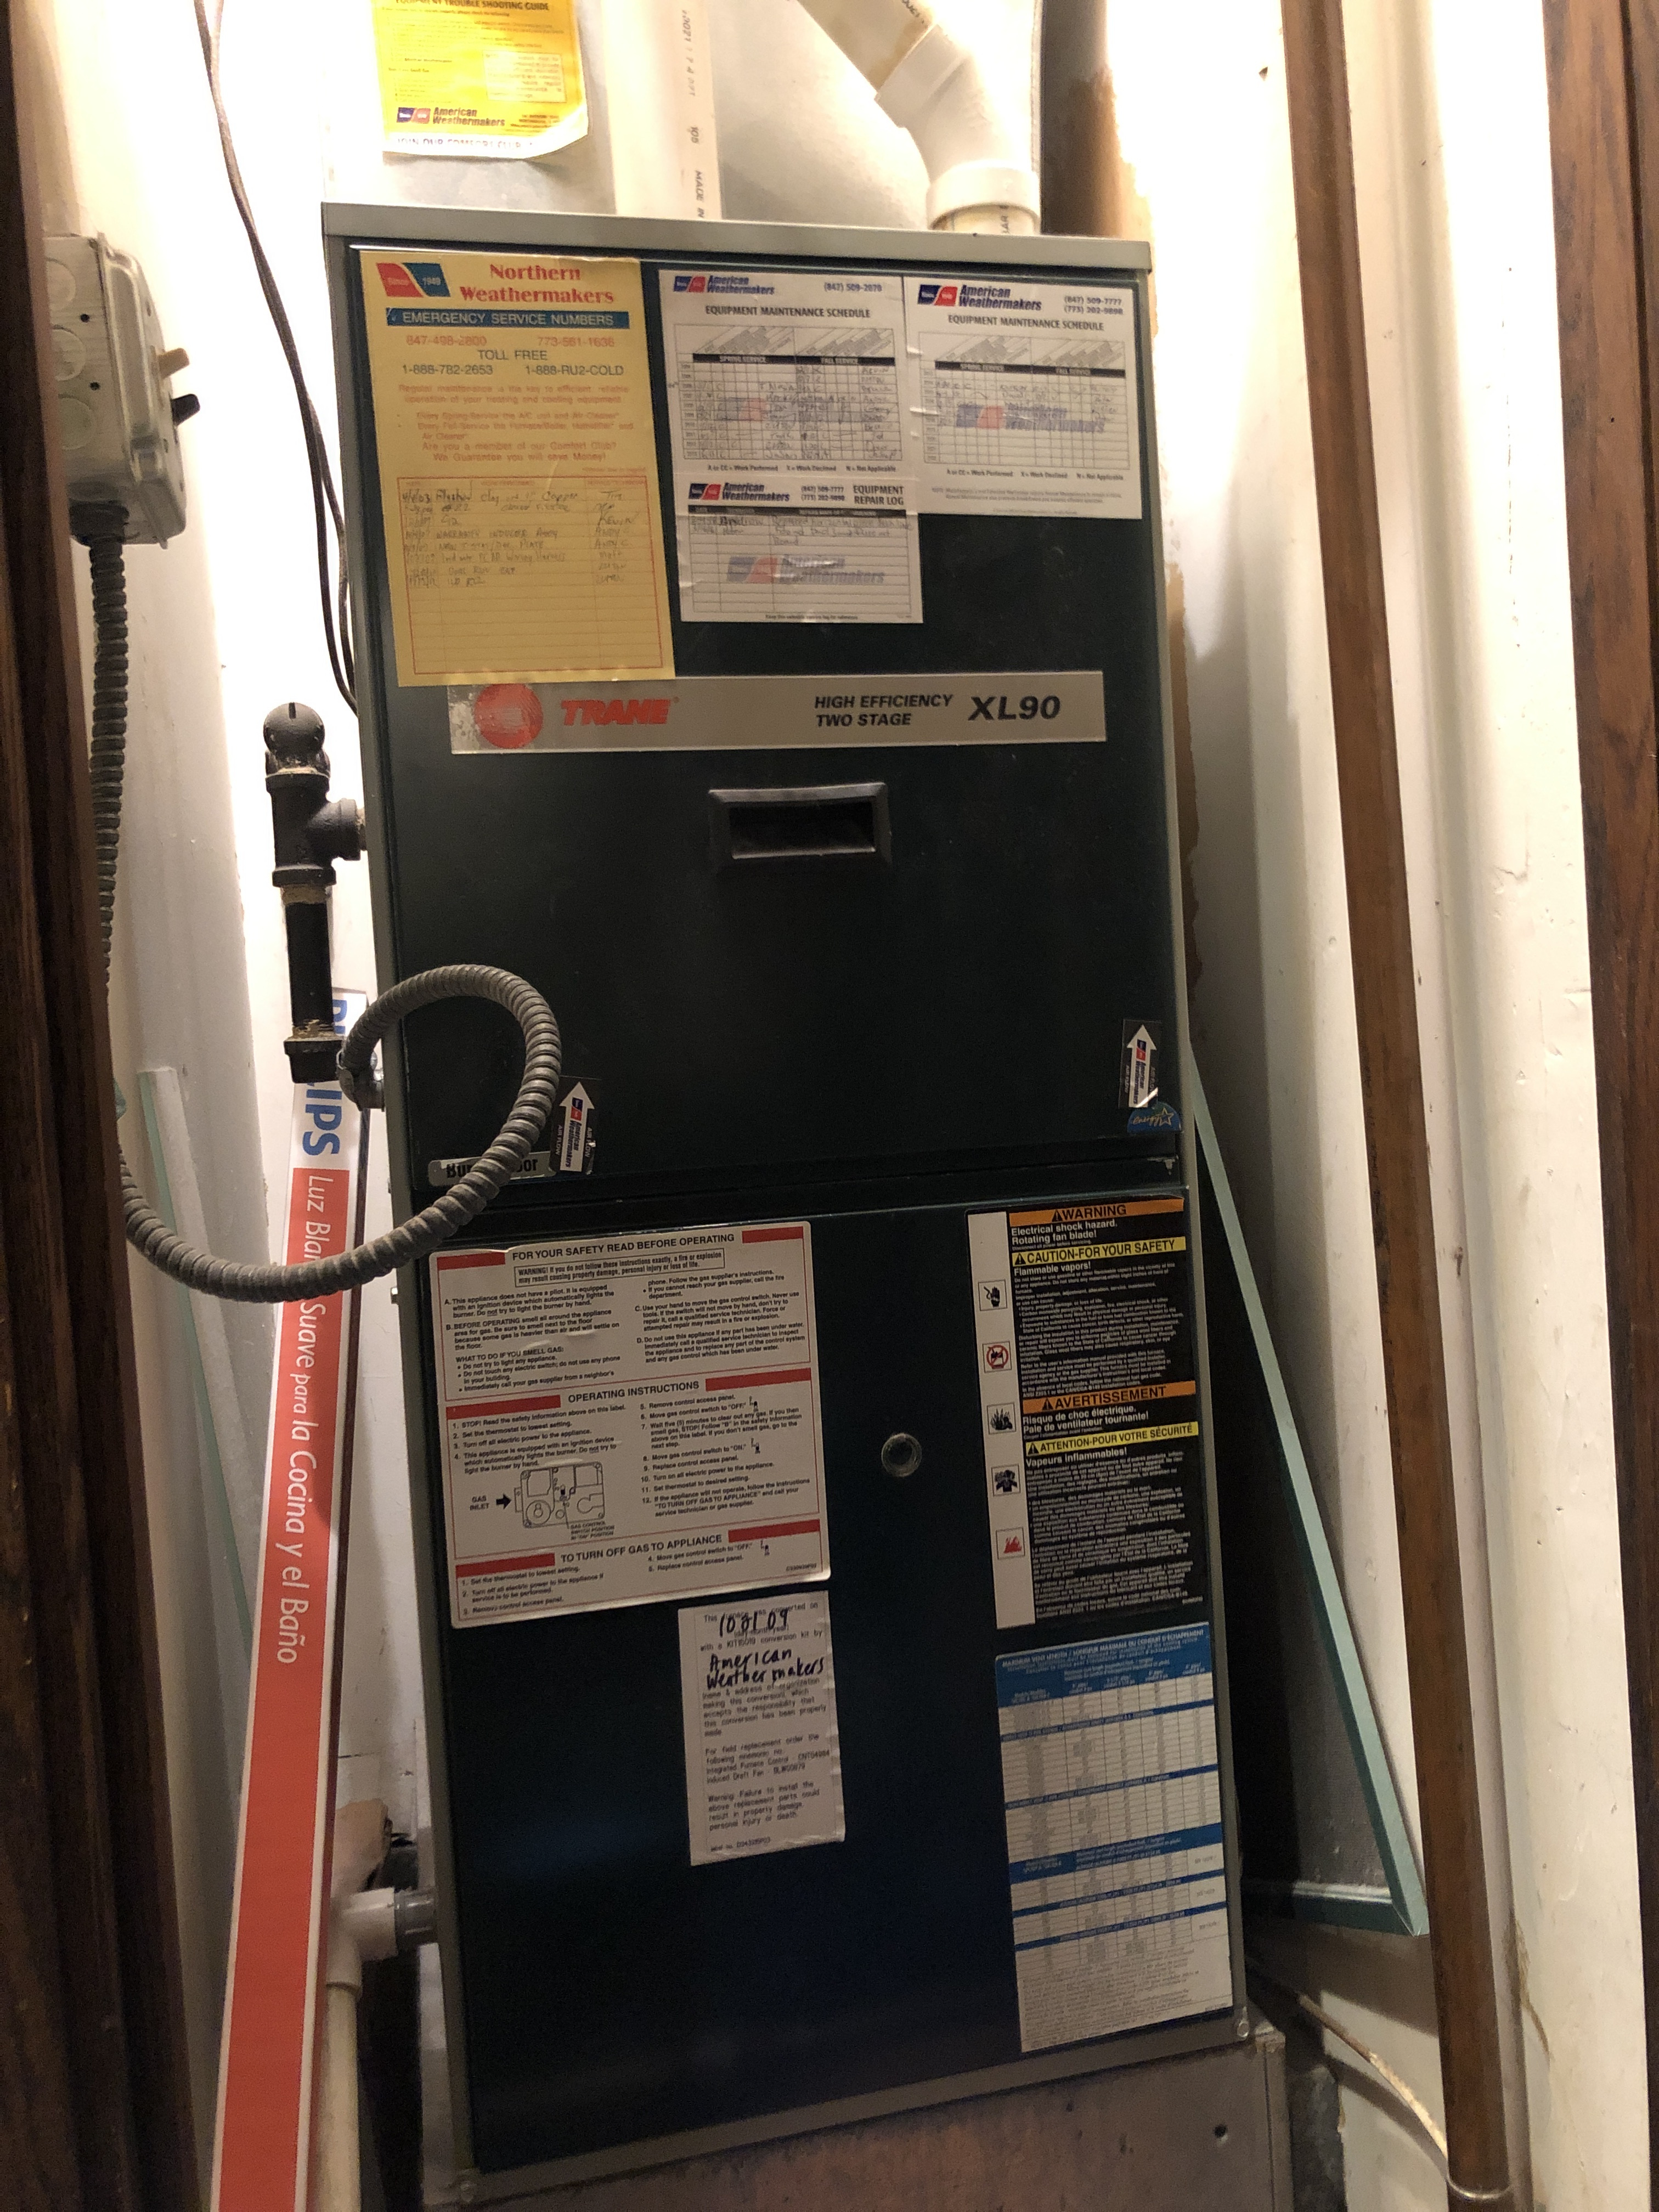 Arrived on call for no heat cycled unit found wiring problem in blower compartment fixed it and cycled unit to ensure no other problems were evident. Everything is functioning normally at this time.